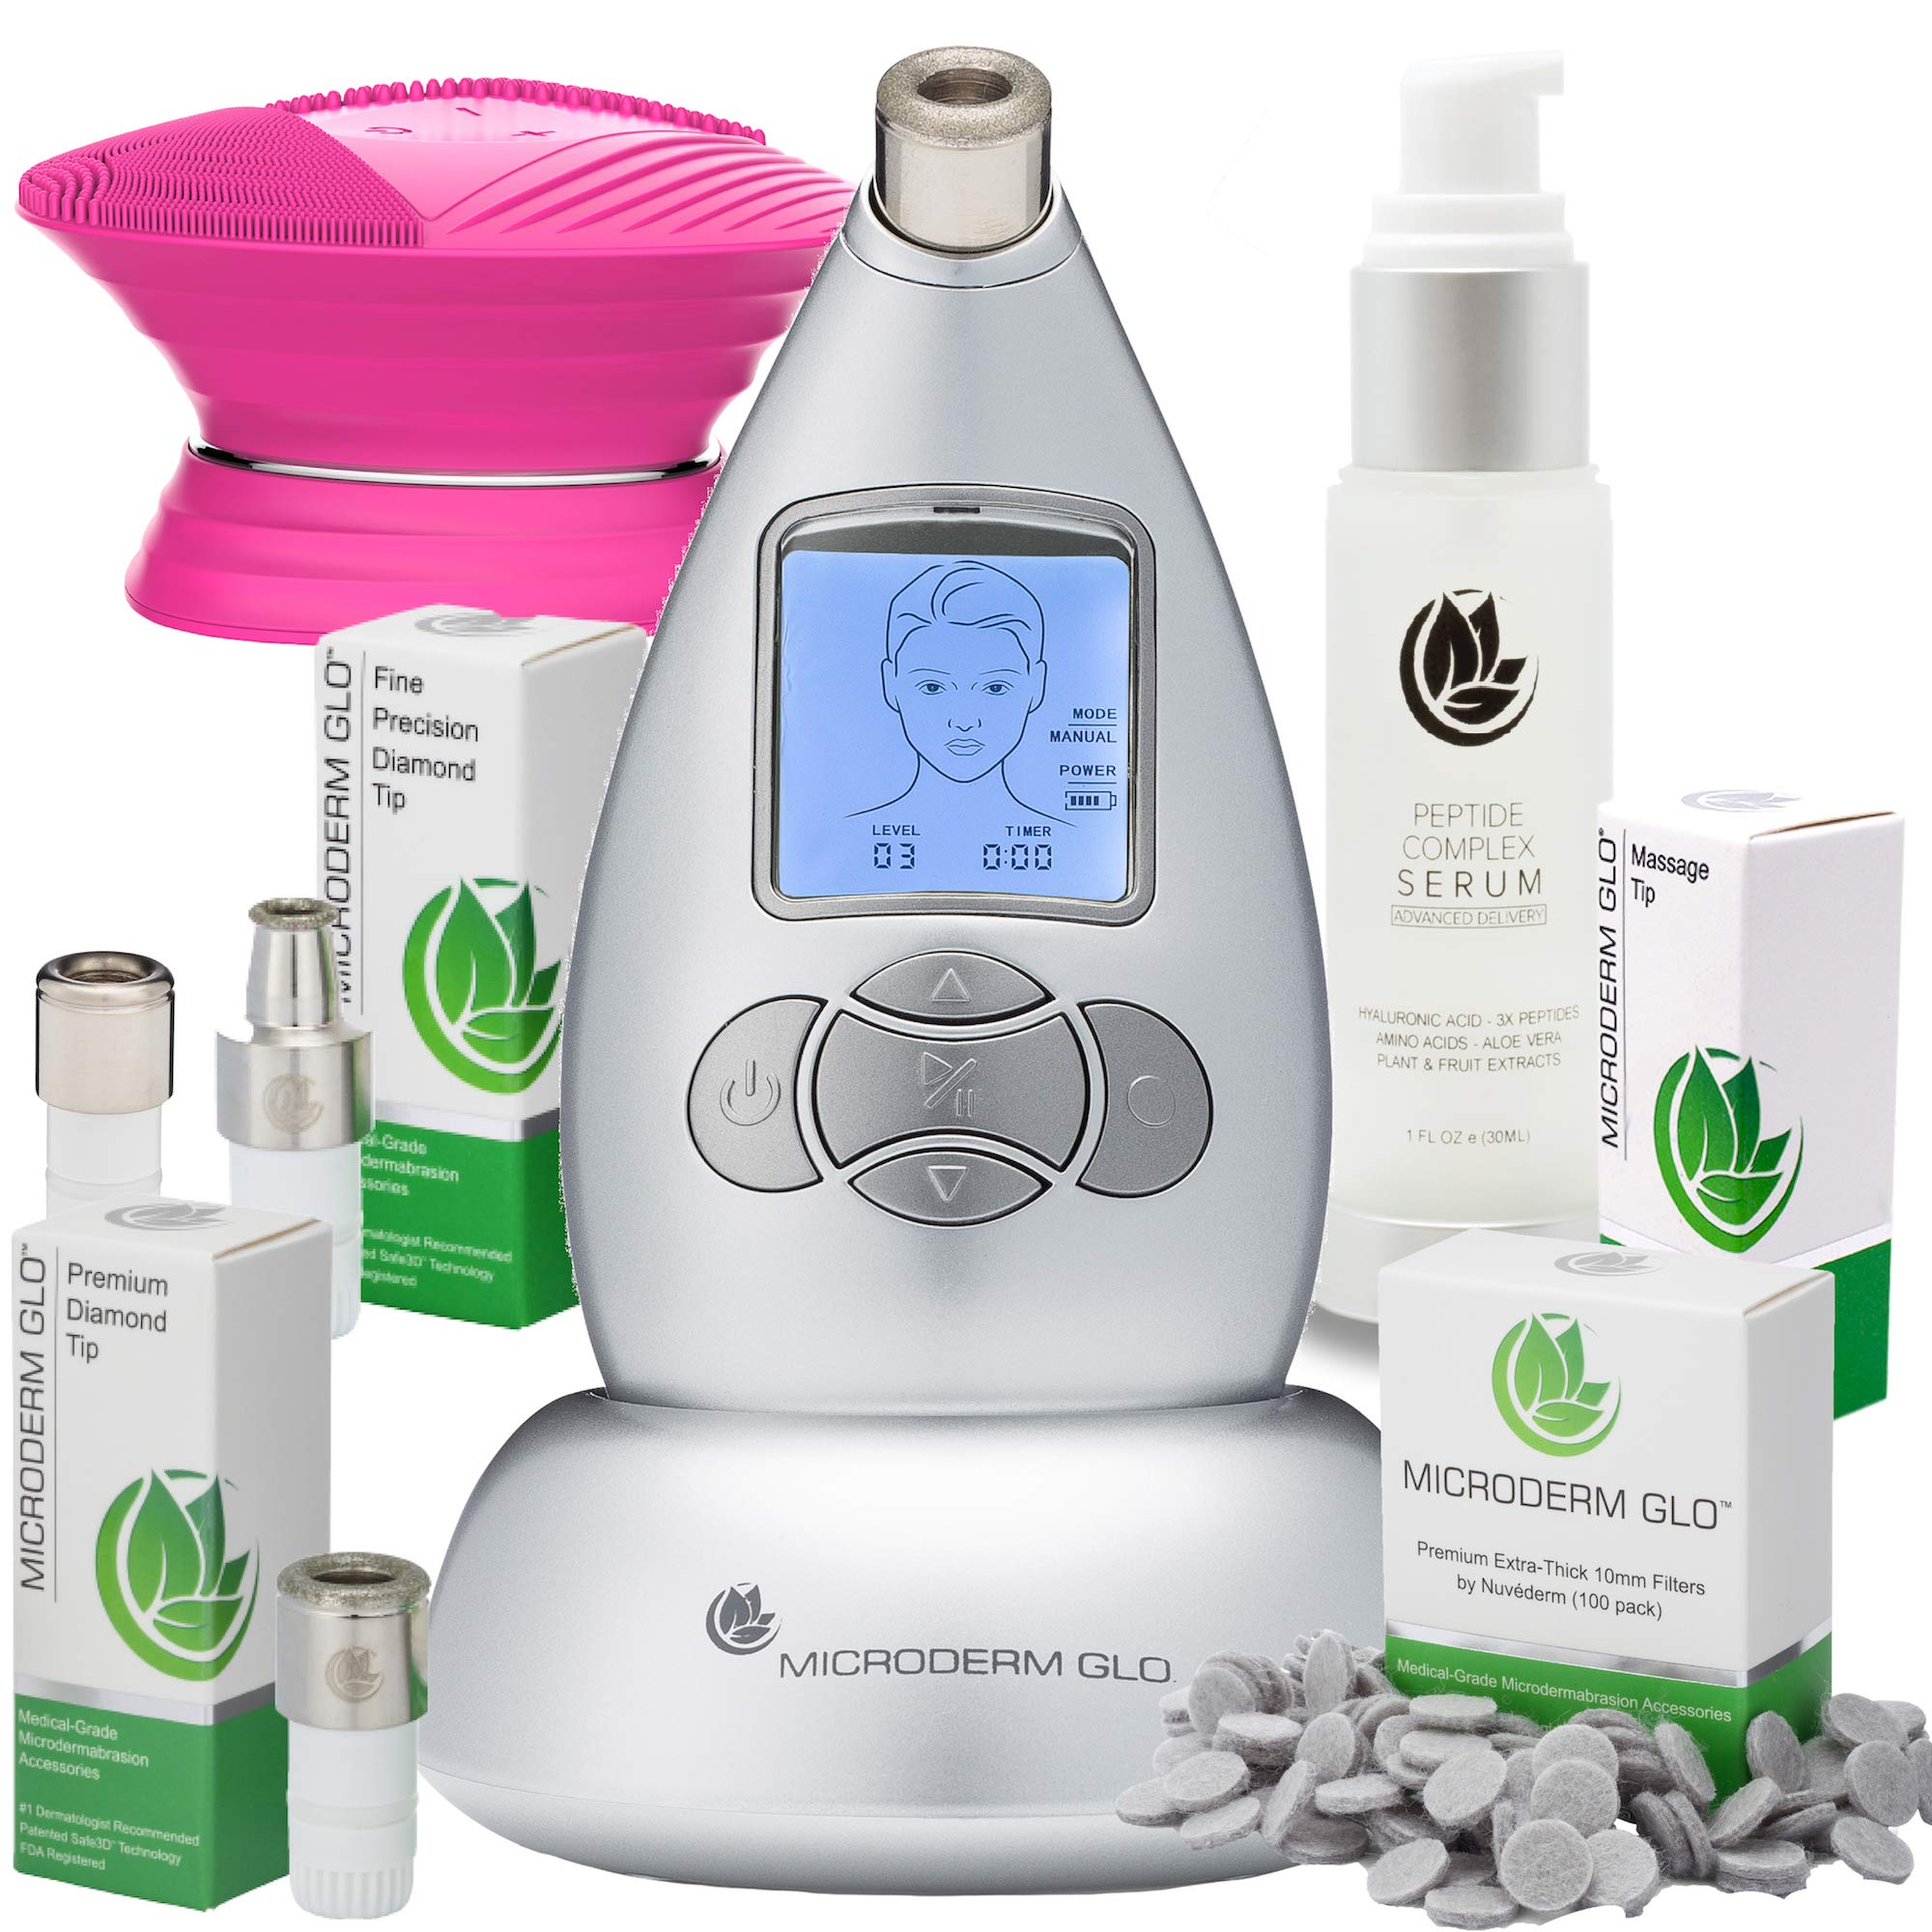 Microderm GLO Complete Skincare Package Includes Diamond Microdermabrasion System, Premium, Fine, Massage Tips, 10mm Filters 100 pack, Peptide Complex Serum & Sonic Facial Cleansing Brush (Silver) by Microderm GLO